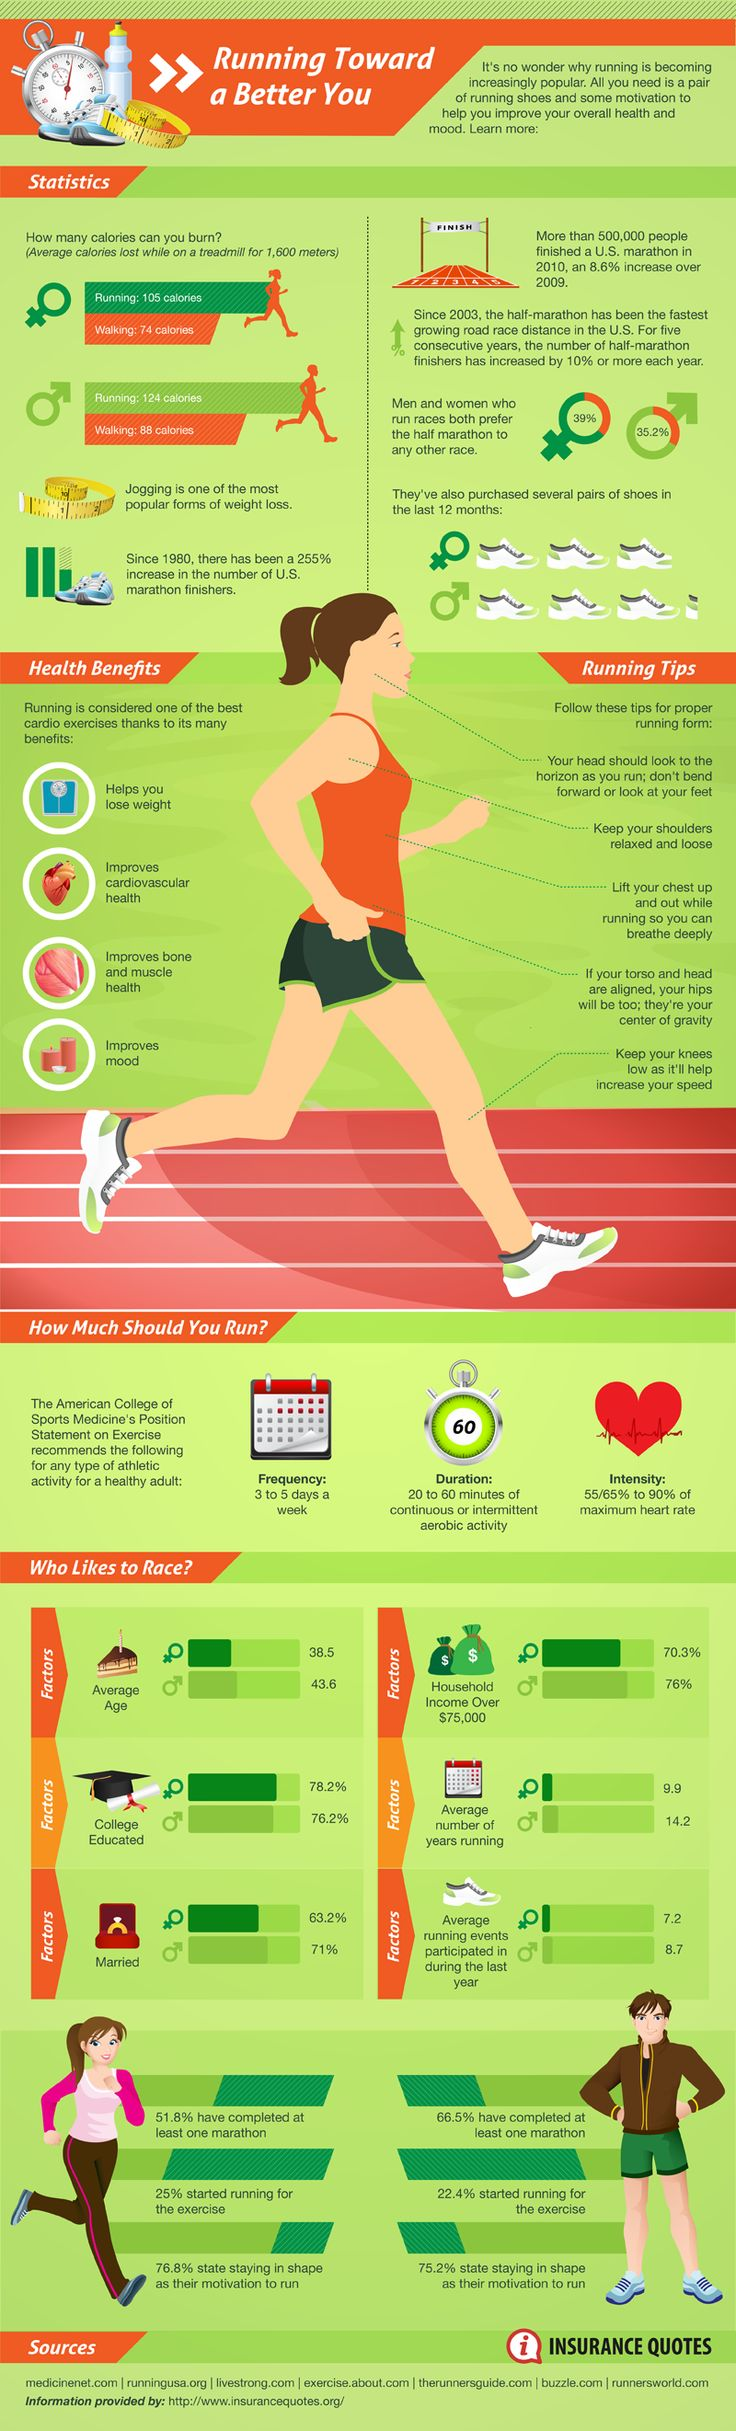 All about running!